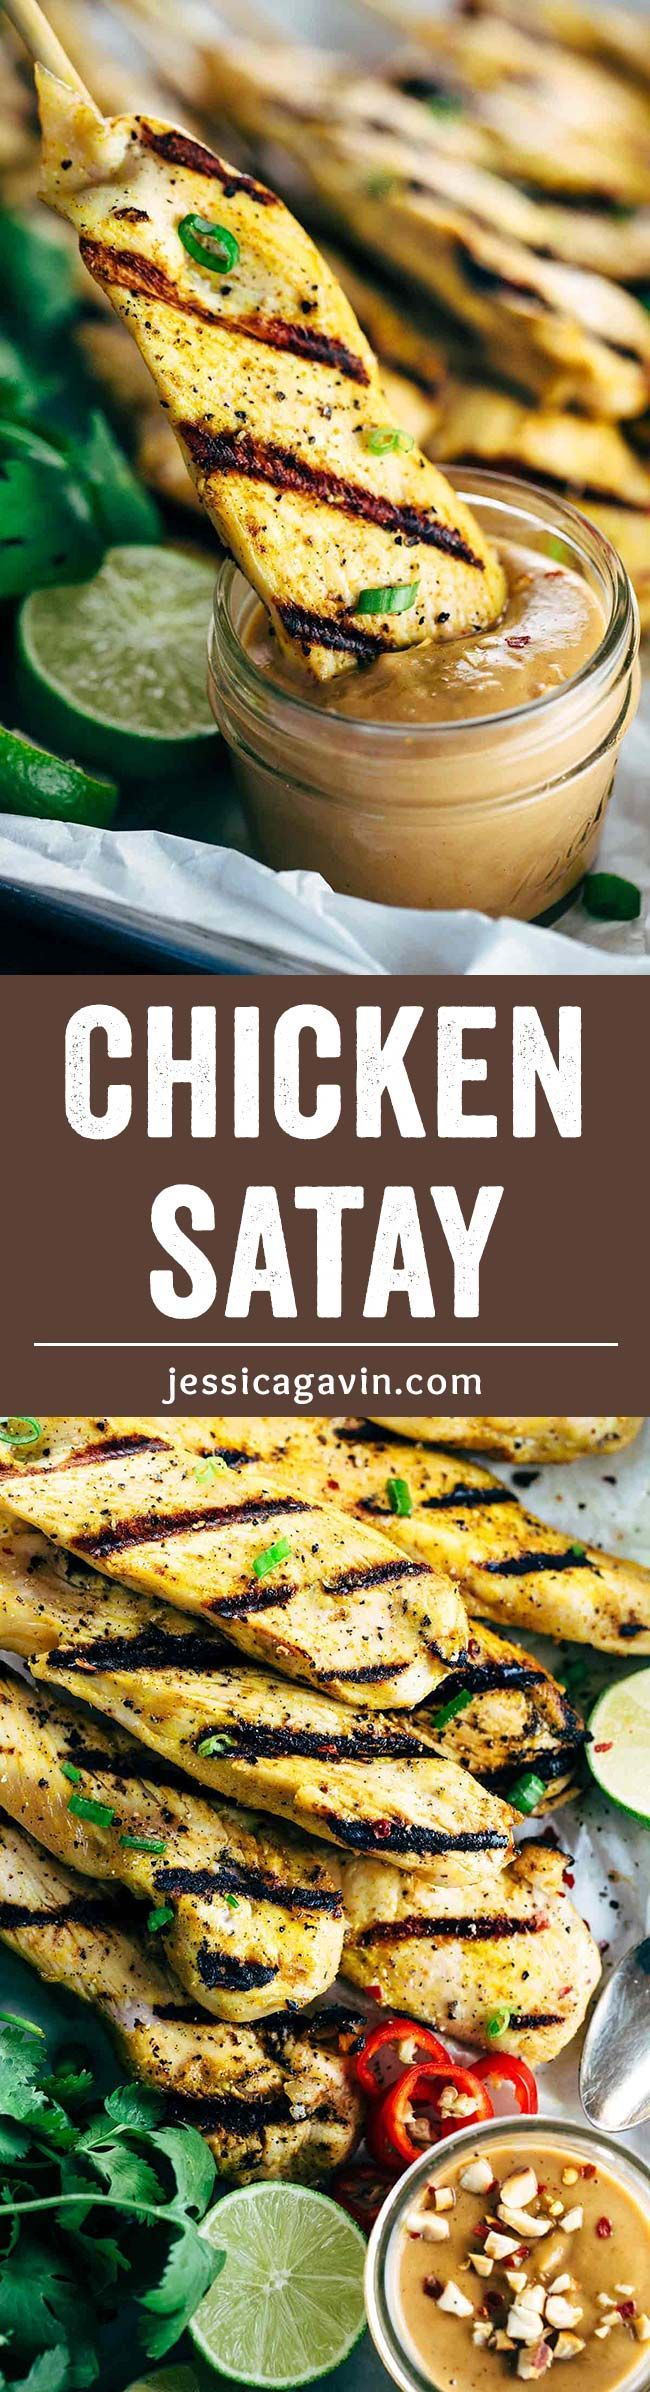 Coconut Curry Chicken Satay with Peanut Sauce - Thai inspired flavors are infused into each bite of tender grilled chicken. | jessicagavin.com